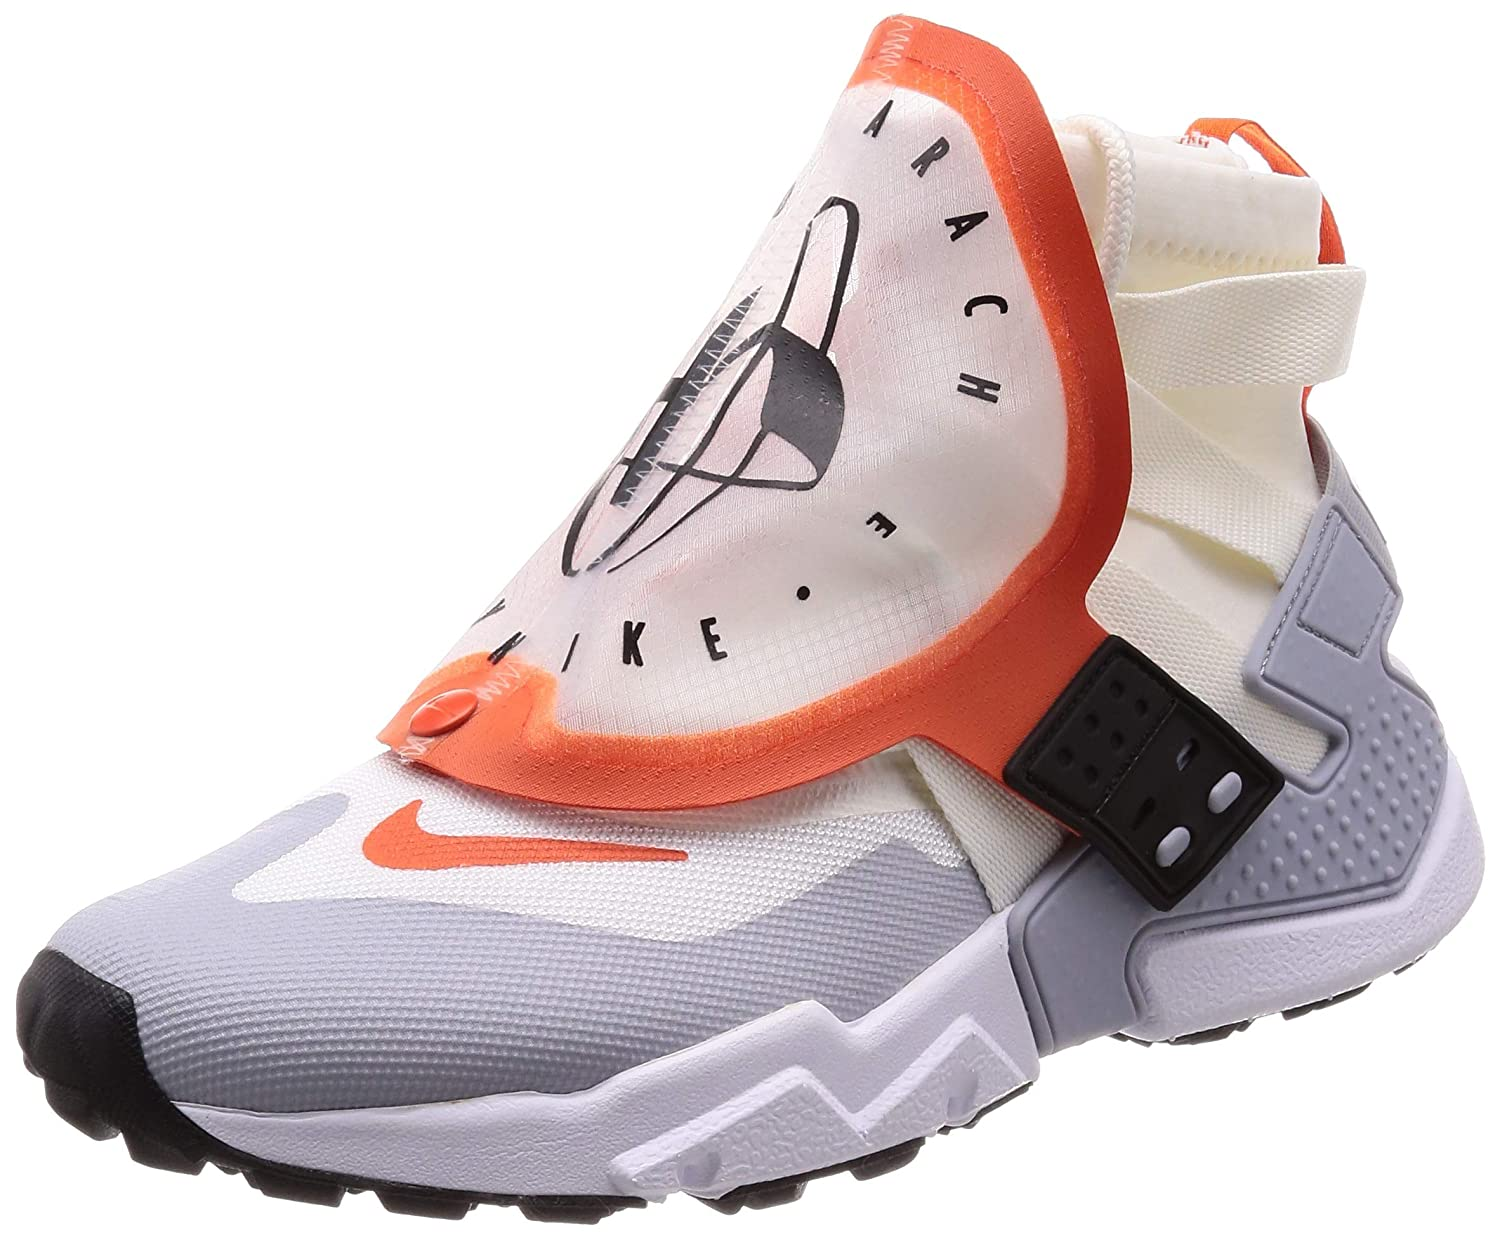 27d3337e03928 Amazon.com | Nike Air Huarache Gripp QS - US 11 | Fashion Sneakers